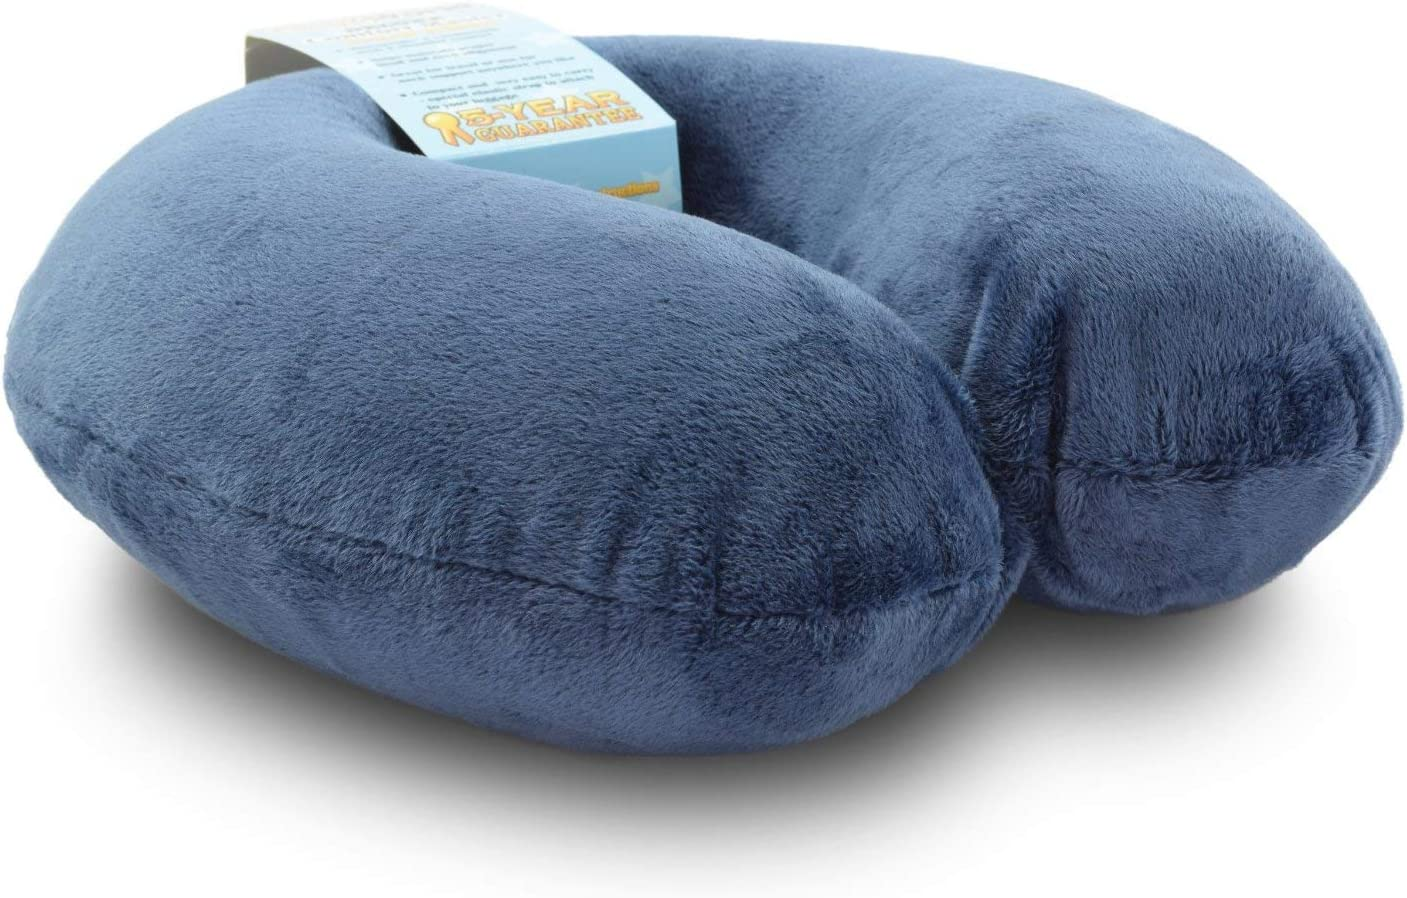 Crafty World Airplane Neck Pillow for Traveling - Memory Foam, Adjustable Travel Pillows for Sleeping - Soft Head Rest w/ Neck Support - Comfort Master for Flight, Car Seat & Chair